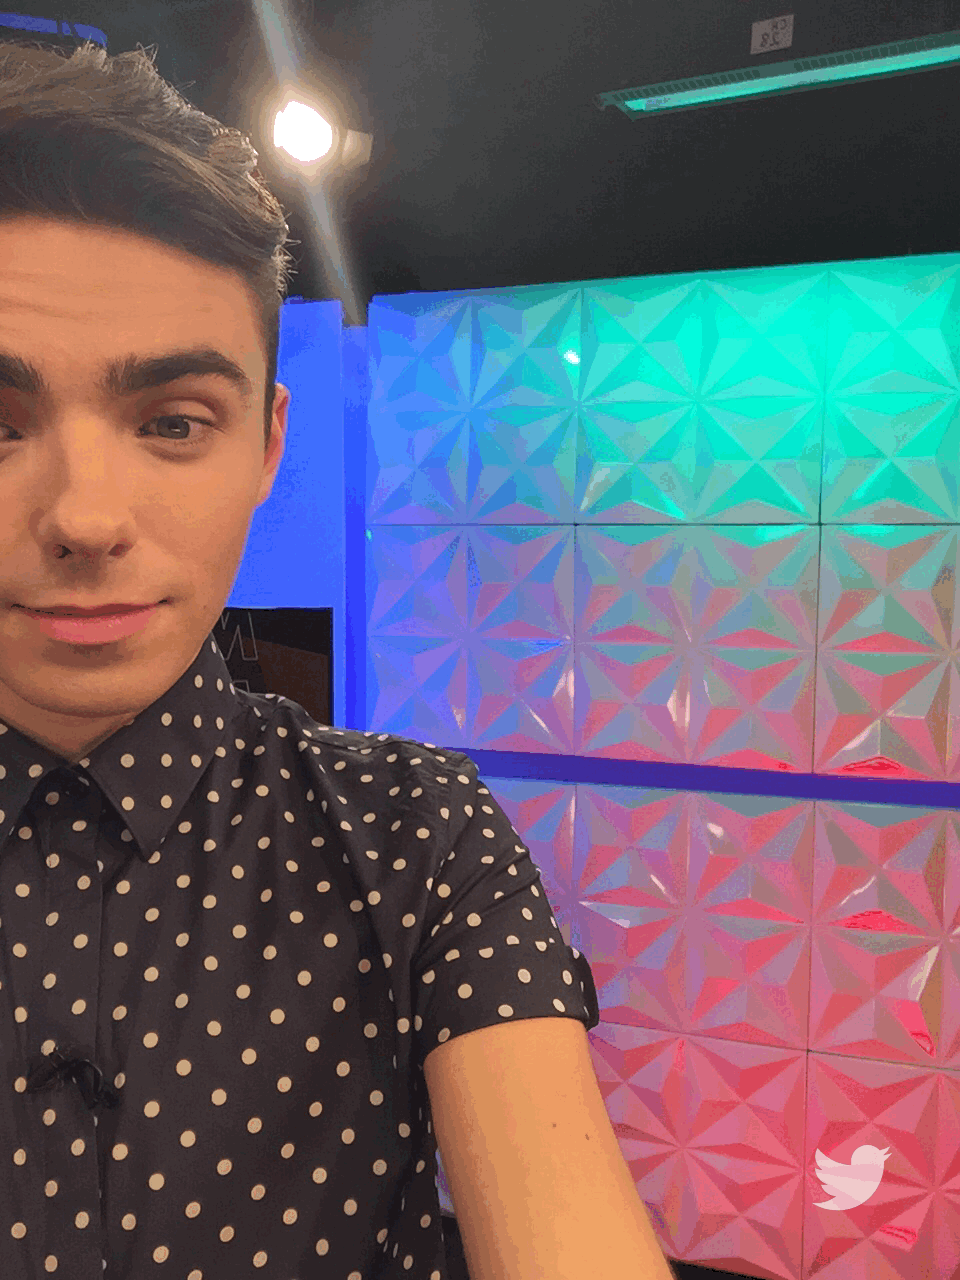 RT @etnow: Look who stopped by today! Our chat with @NathanSykes is coming soon to https://t.co/issuFAH4sT. https://t.co/qaqQD2ehD5